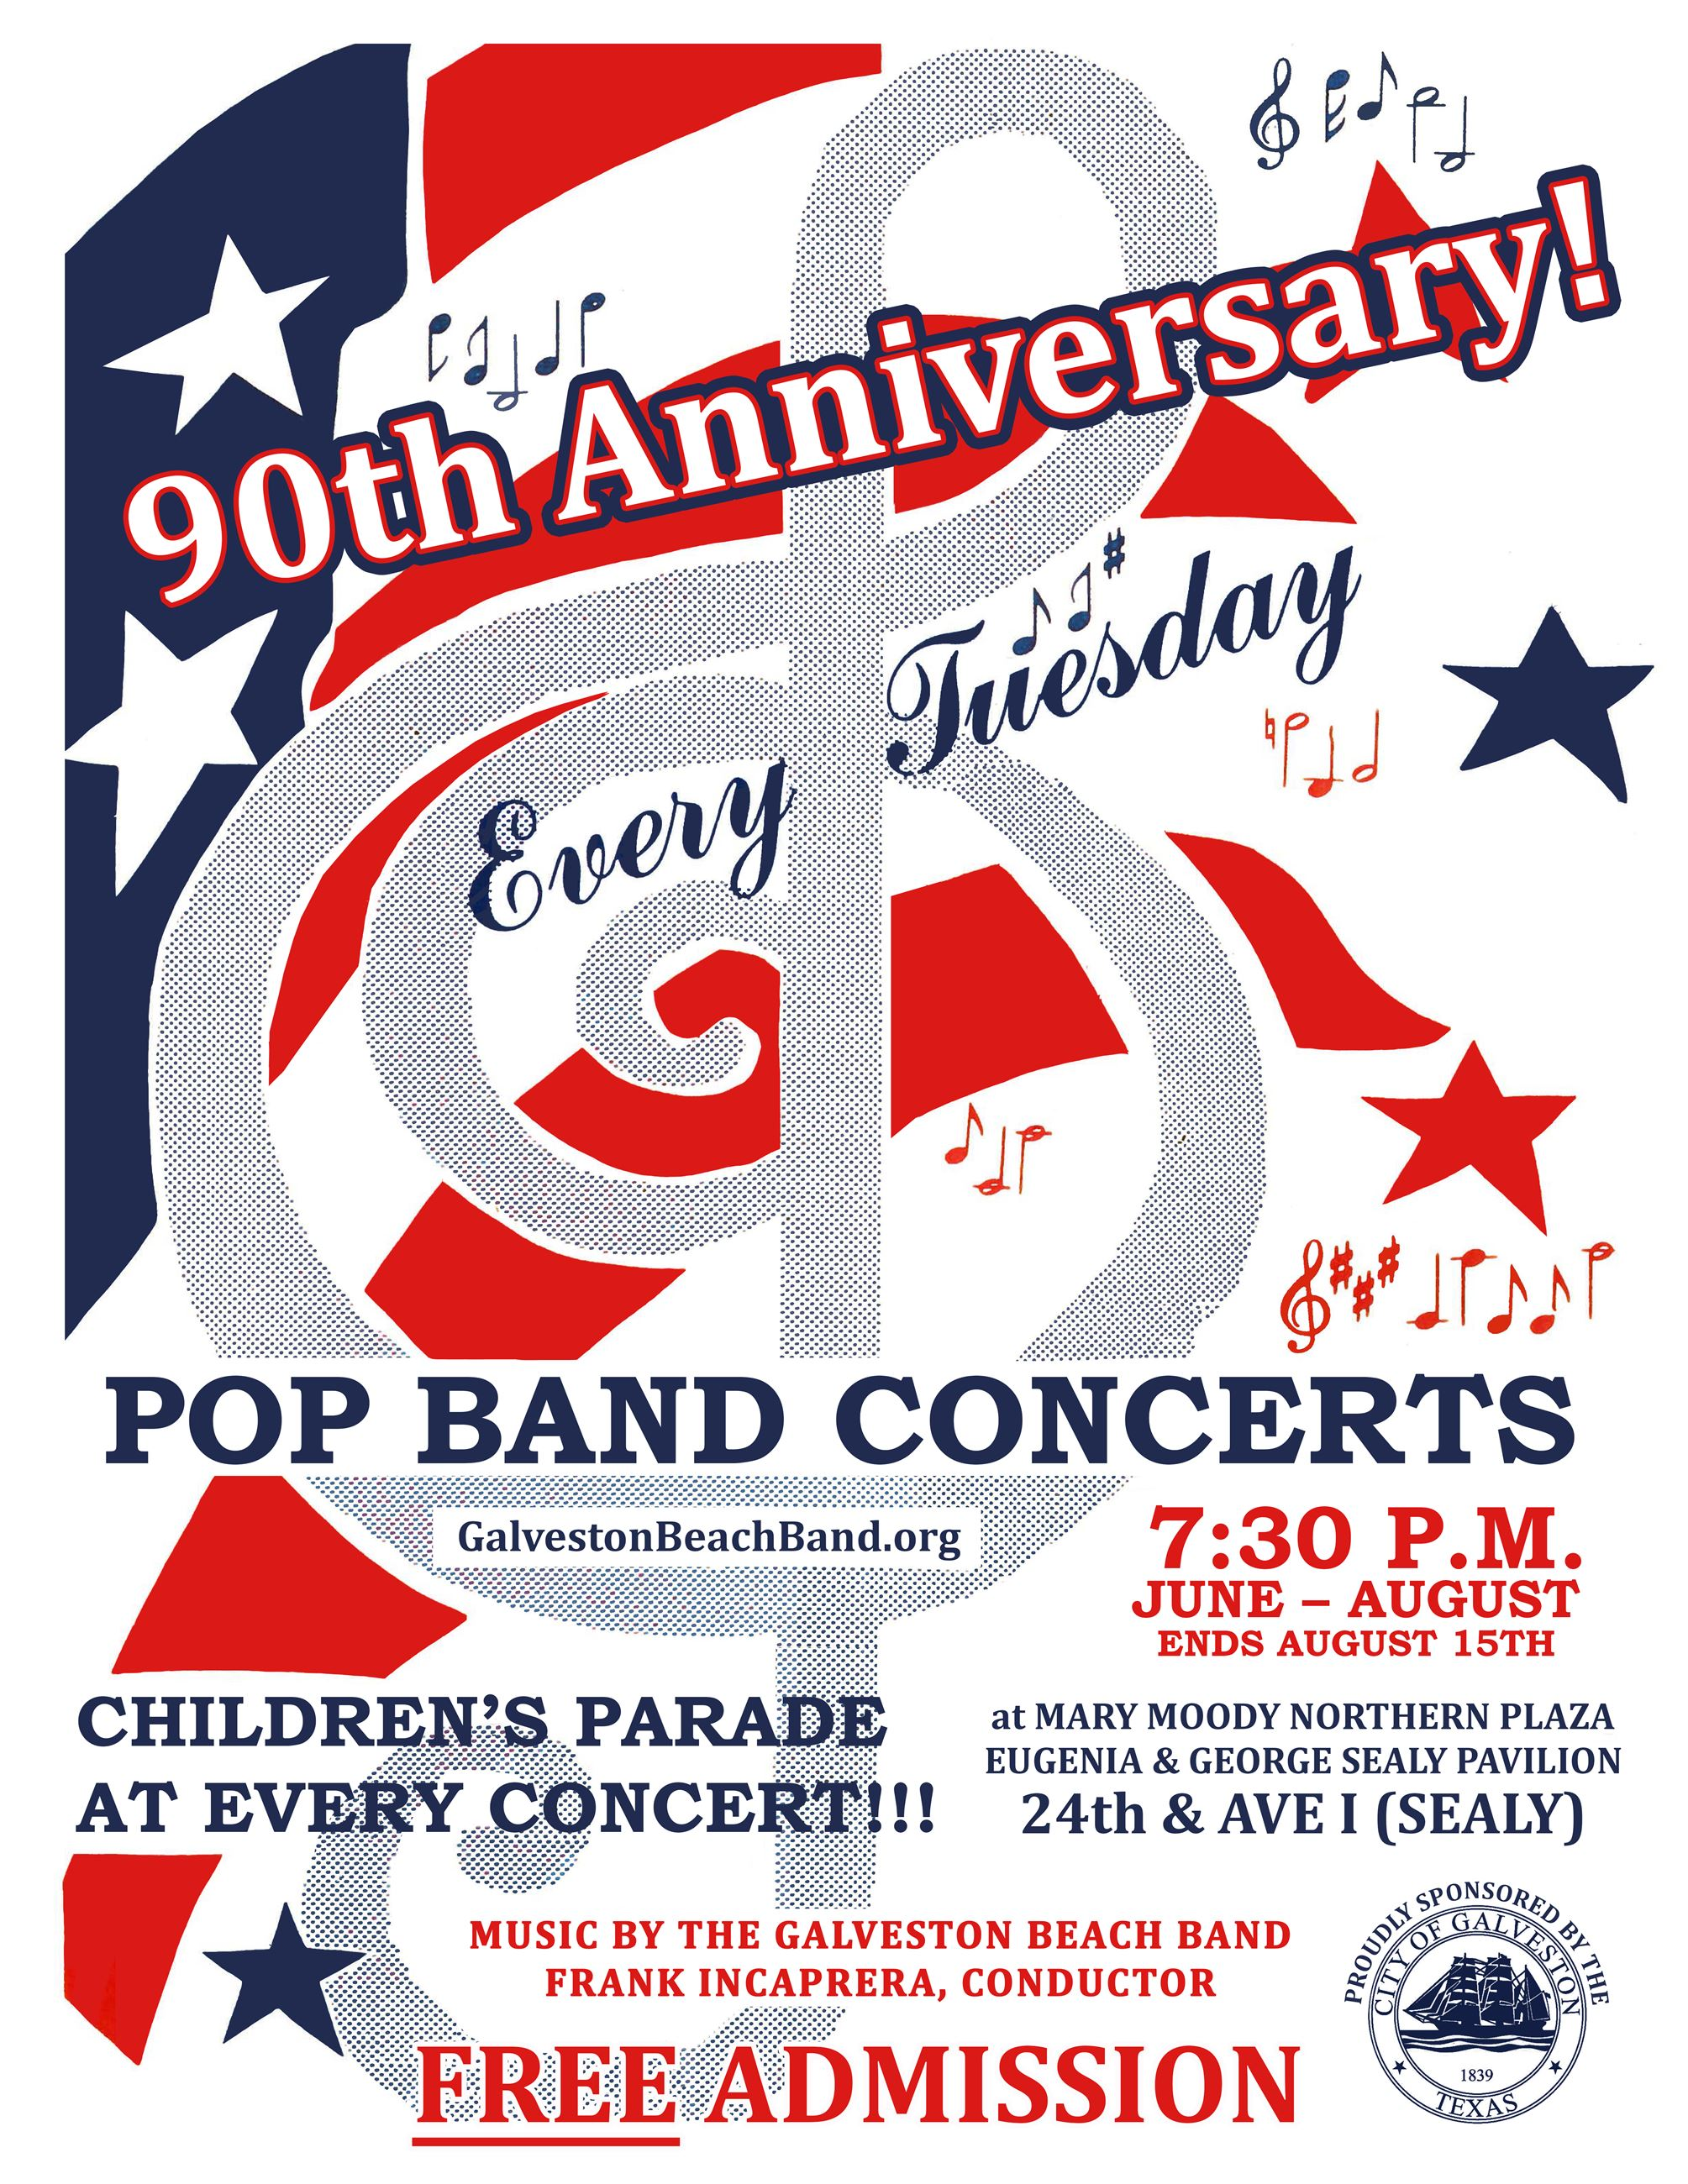 Summer Band Concerts 90th Anniversary